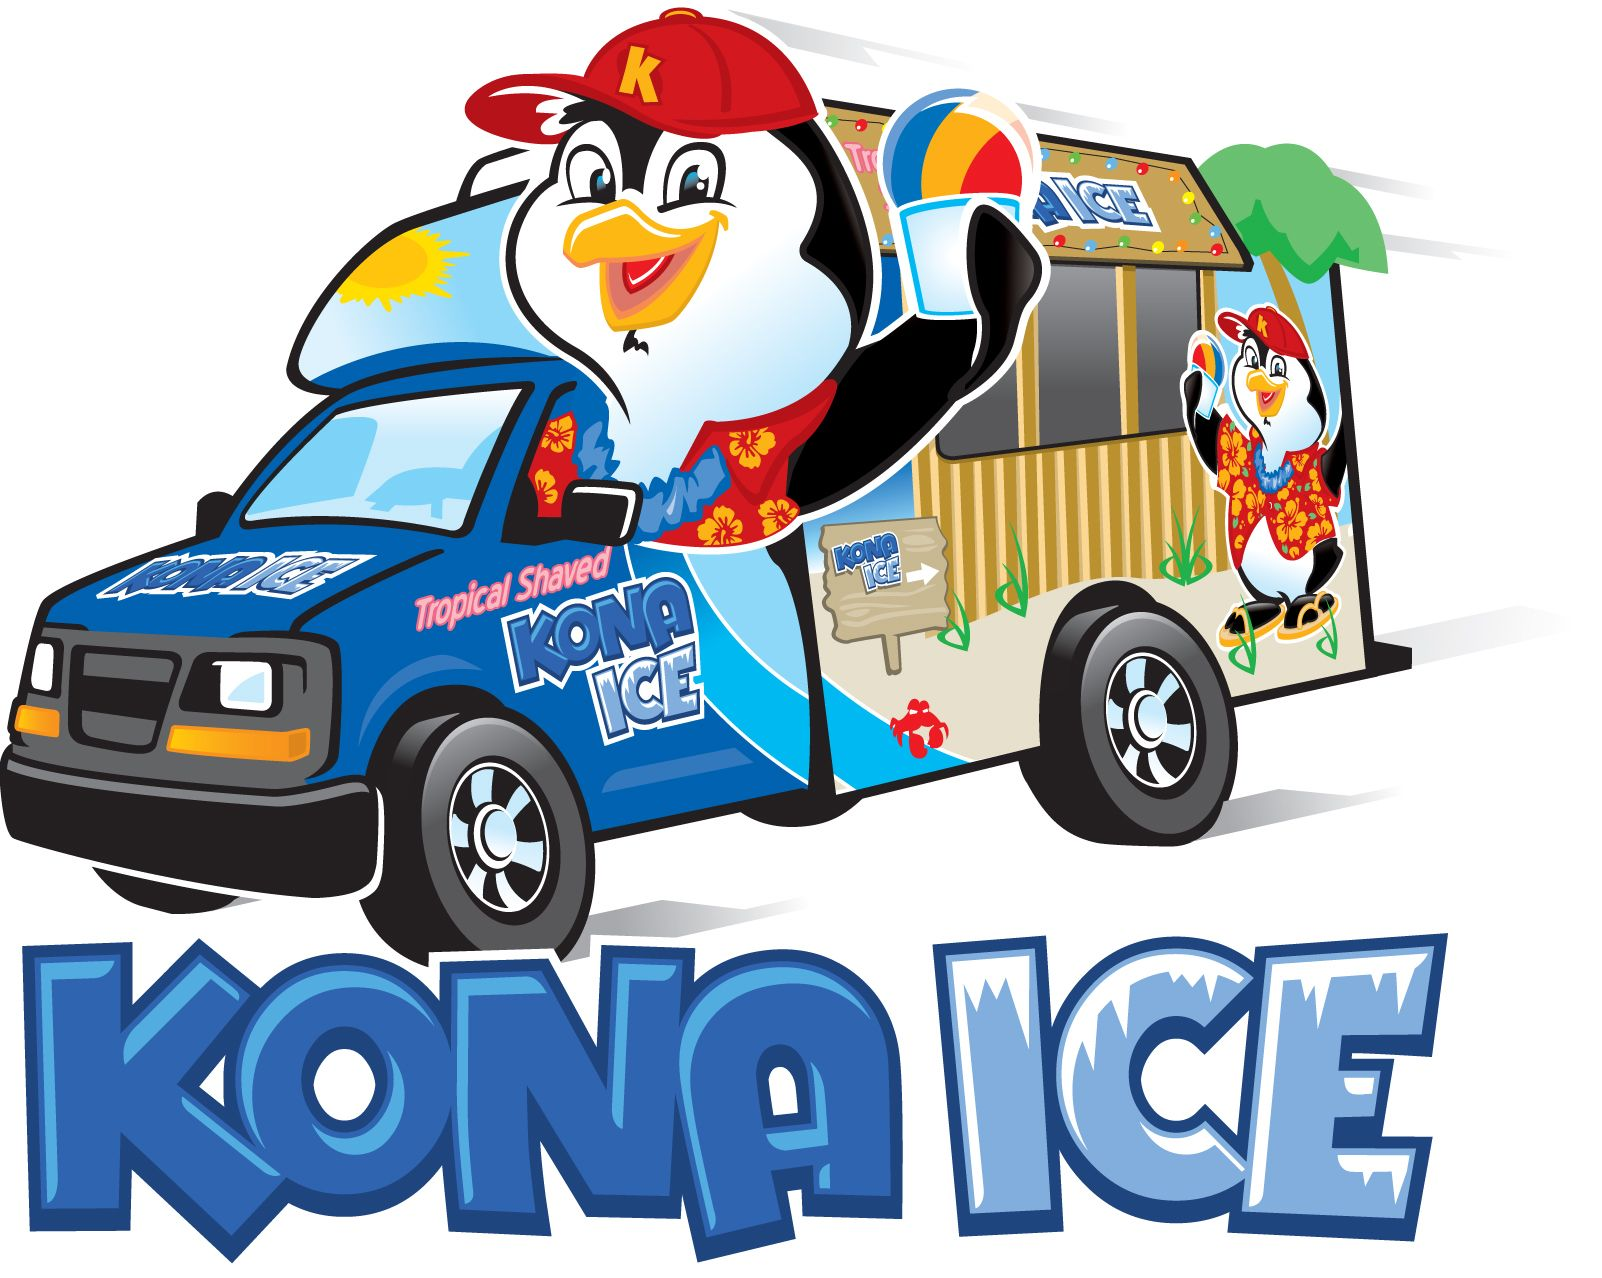 Photo of Kona Ice truck and penguin